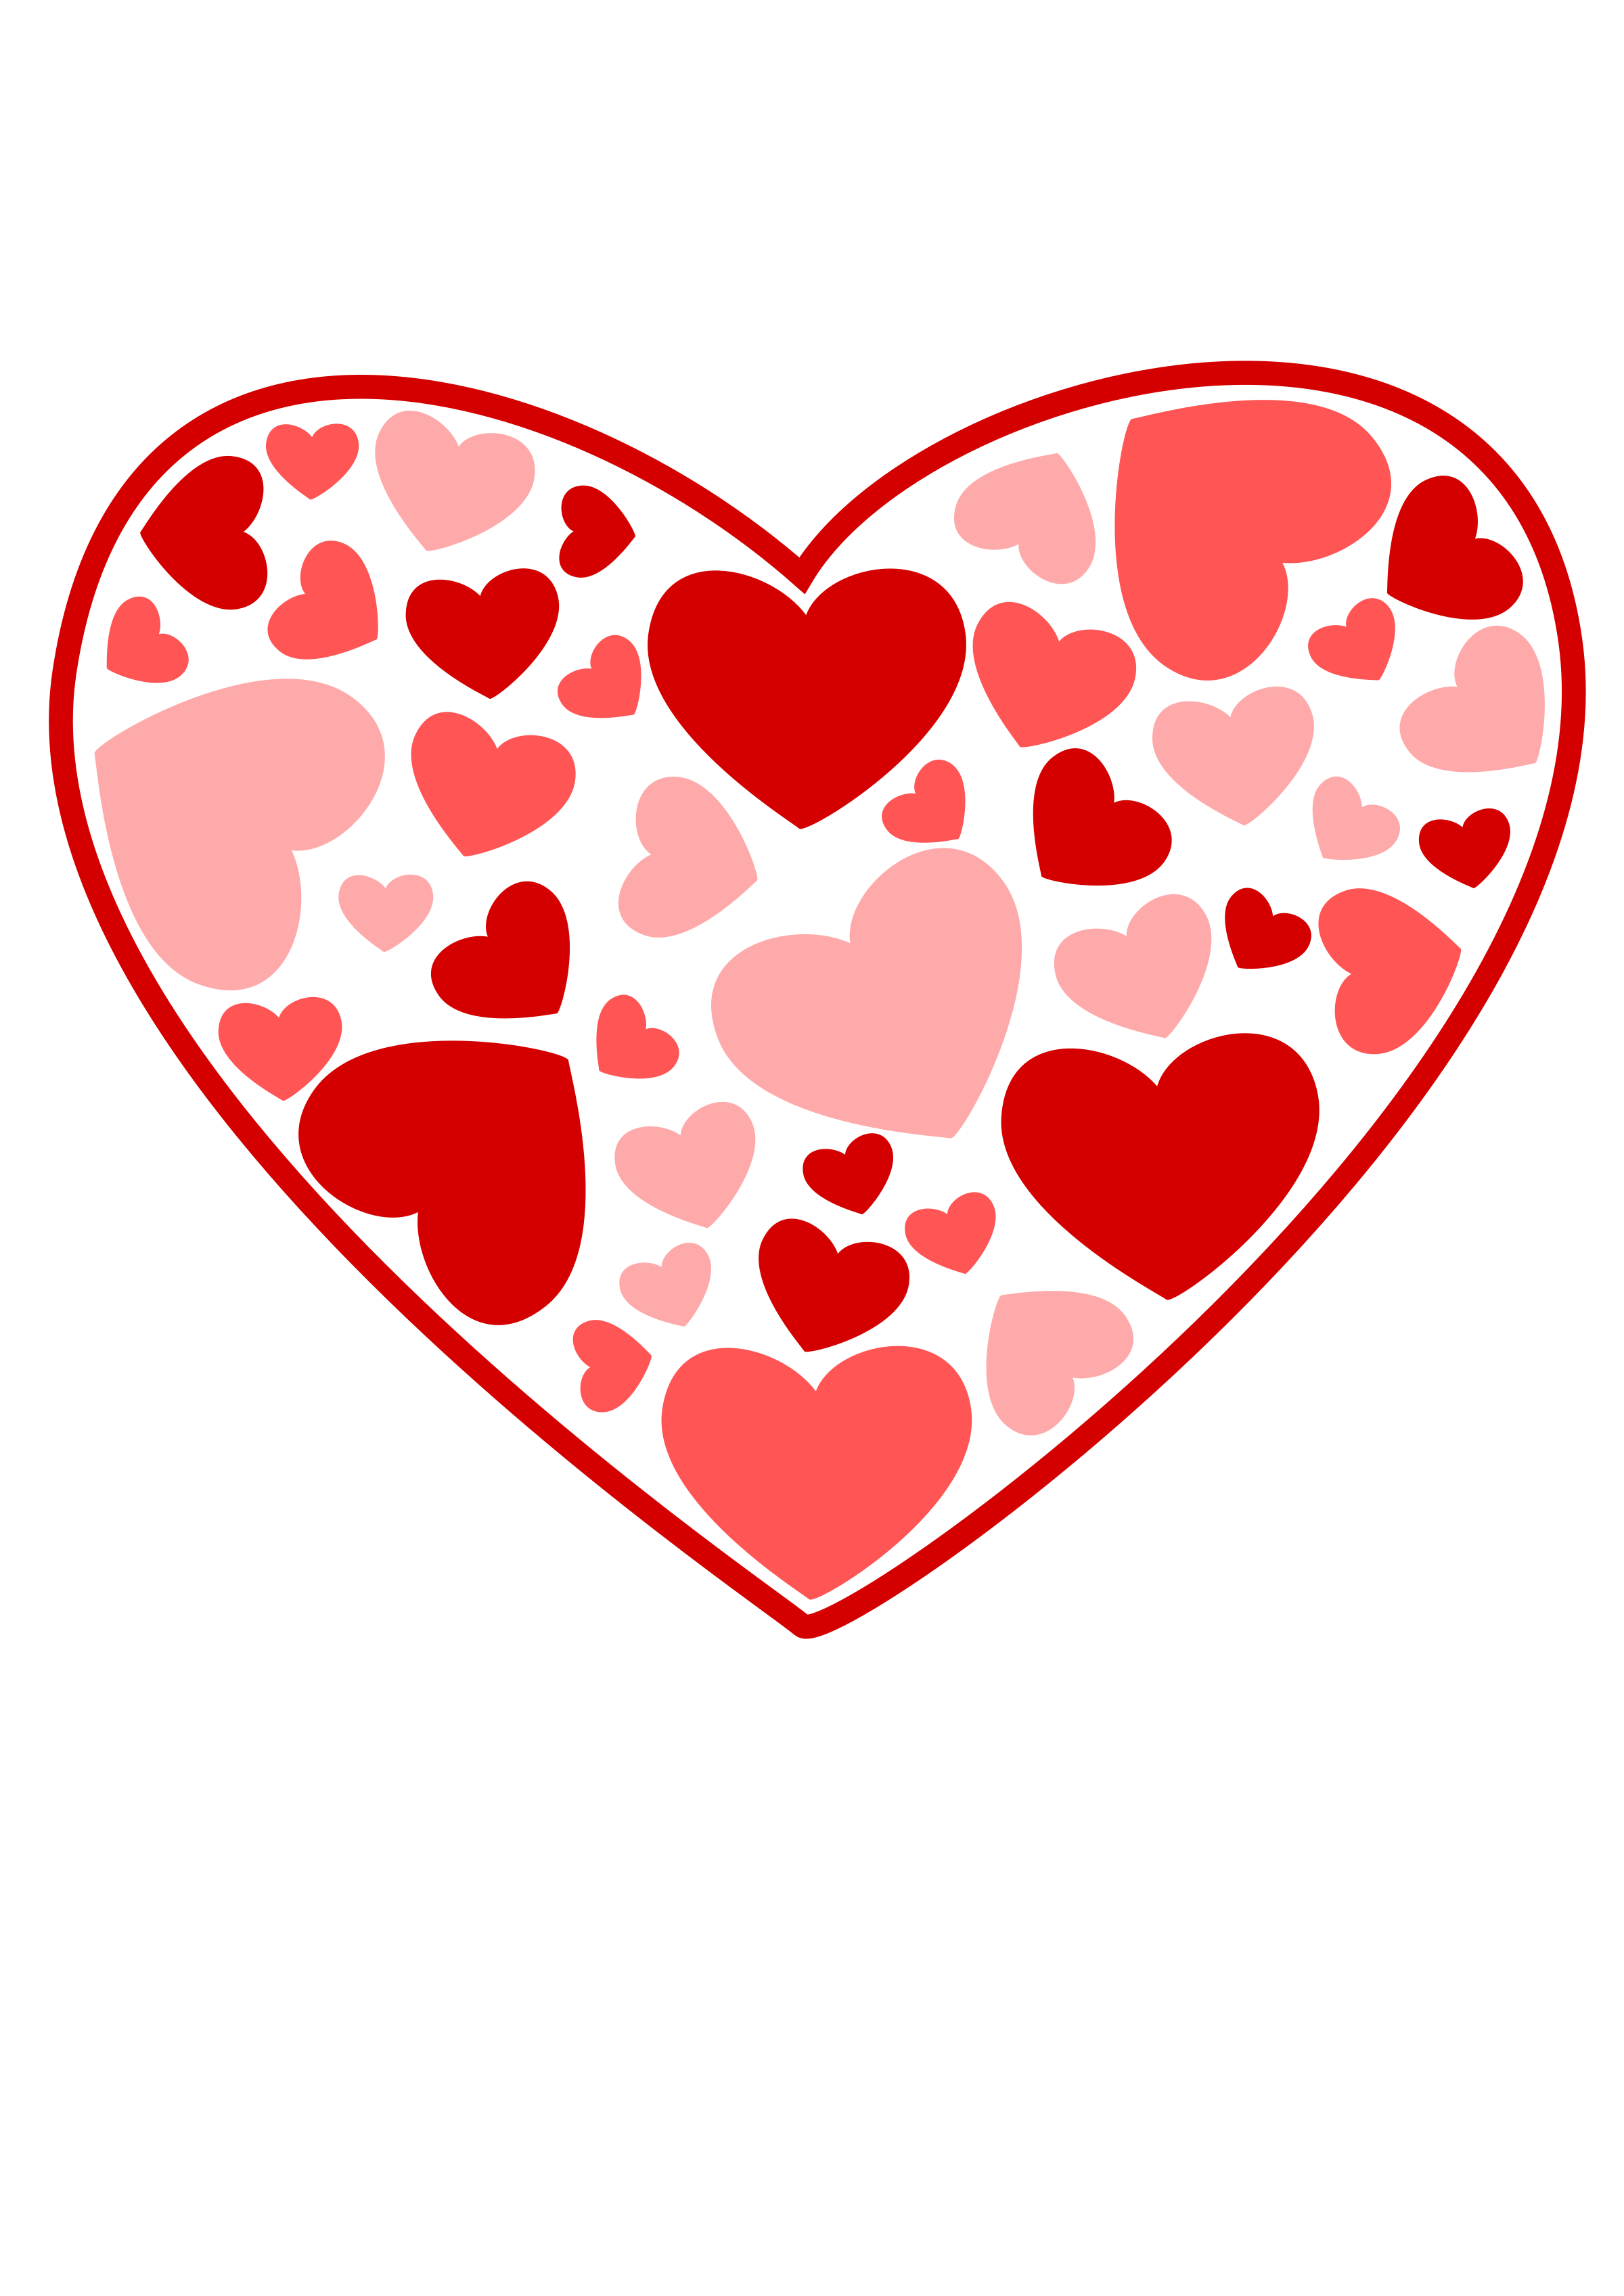 Clipart hearts book. Heart of big image